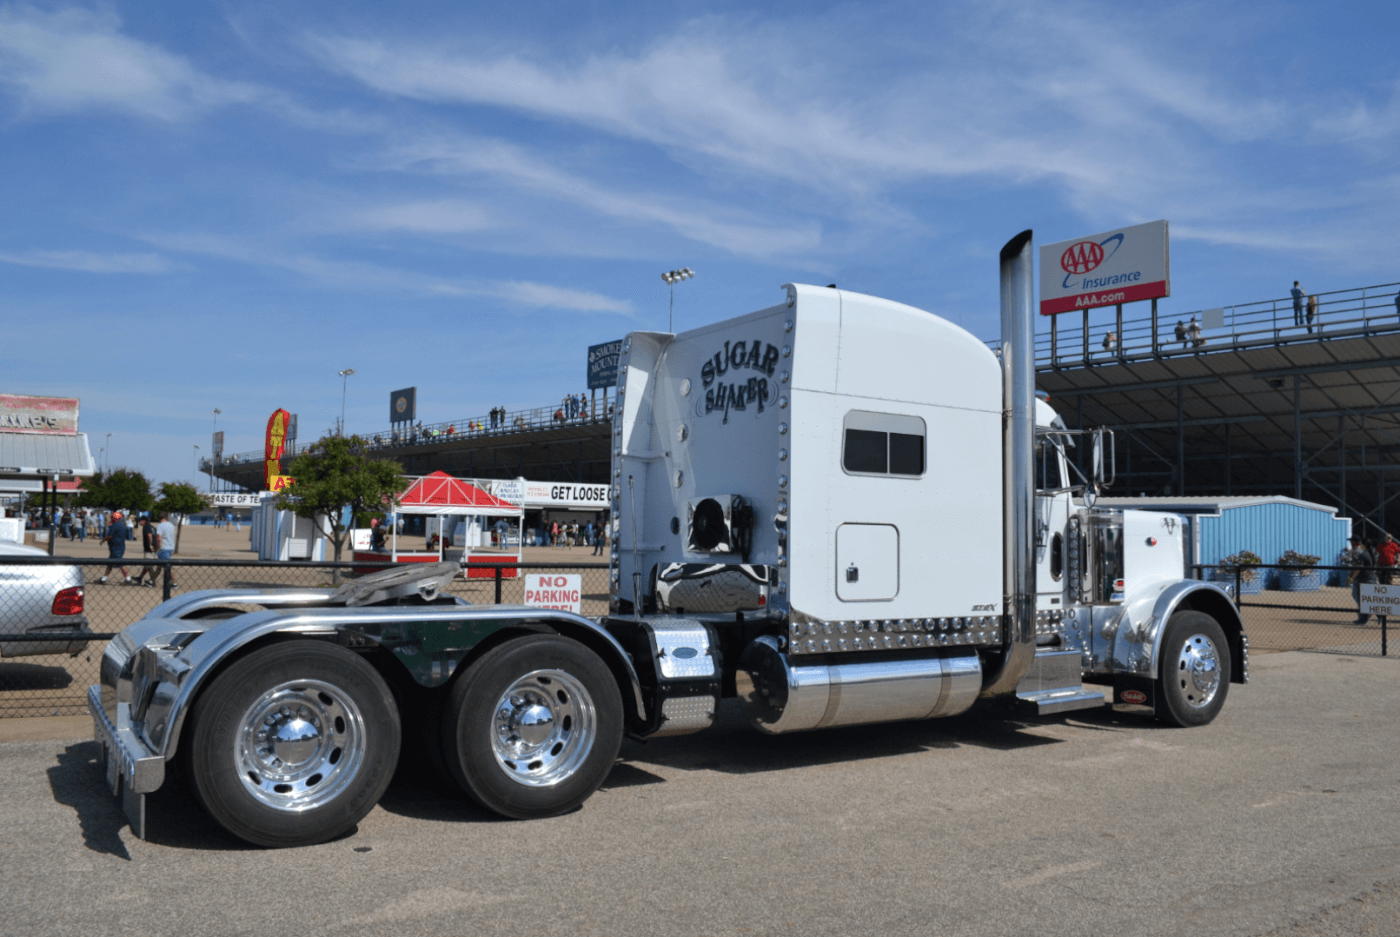 Some of the crowd favorites were in the Big Rig Bracket competition. John Yow, who won the sled pull the night before, proved that big power works on the dragstrip too, taking the win with consistent low 15's at almost 100 mph!